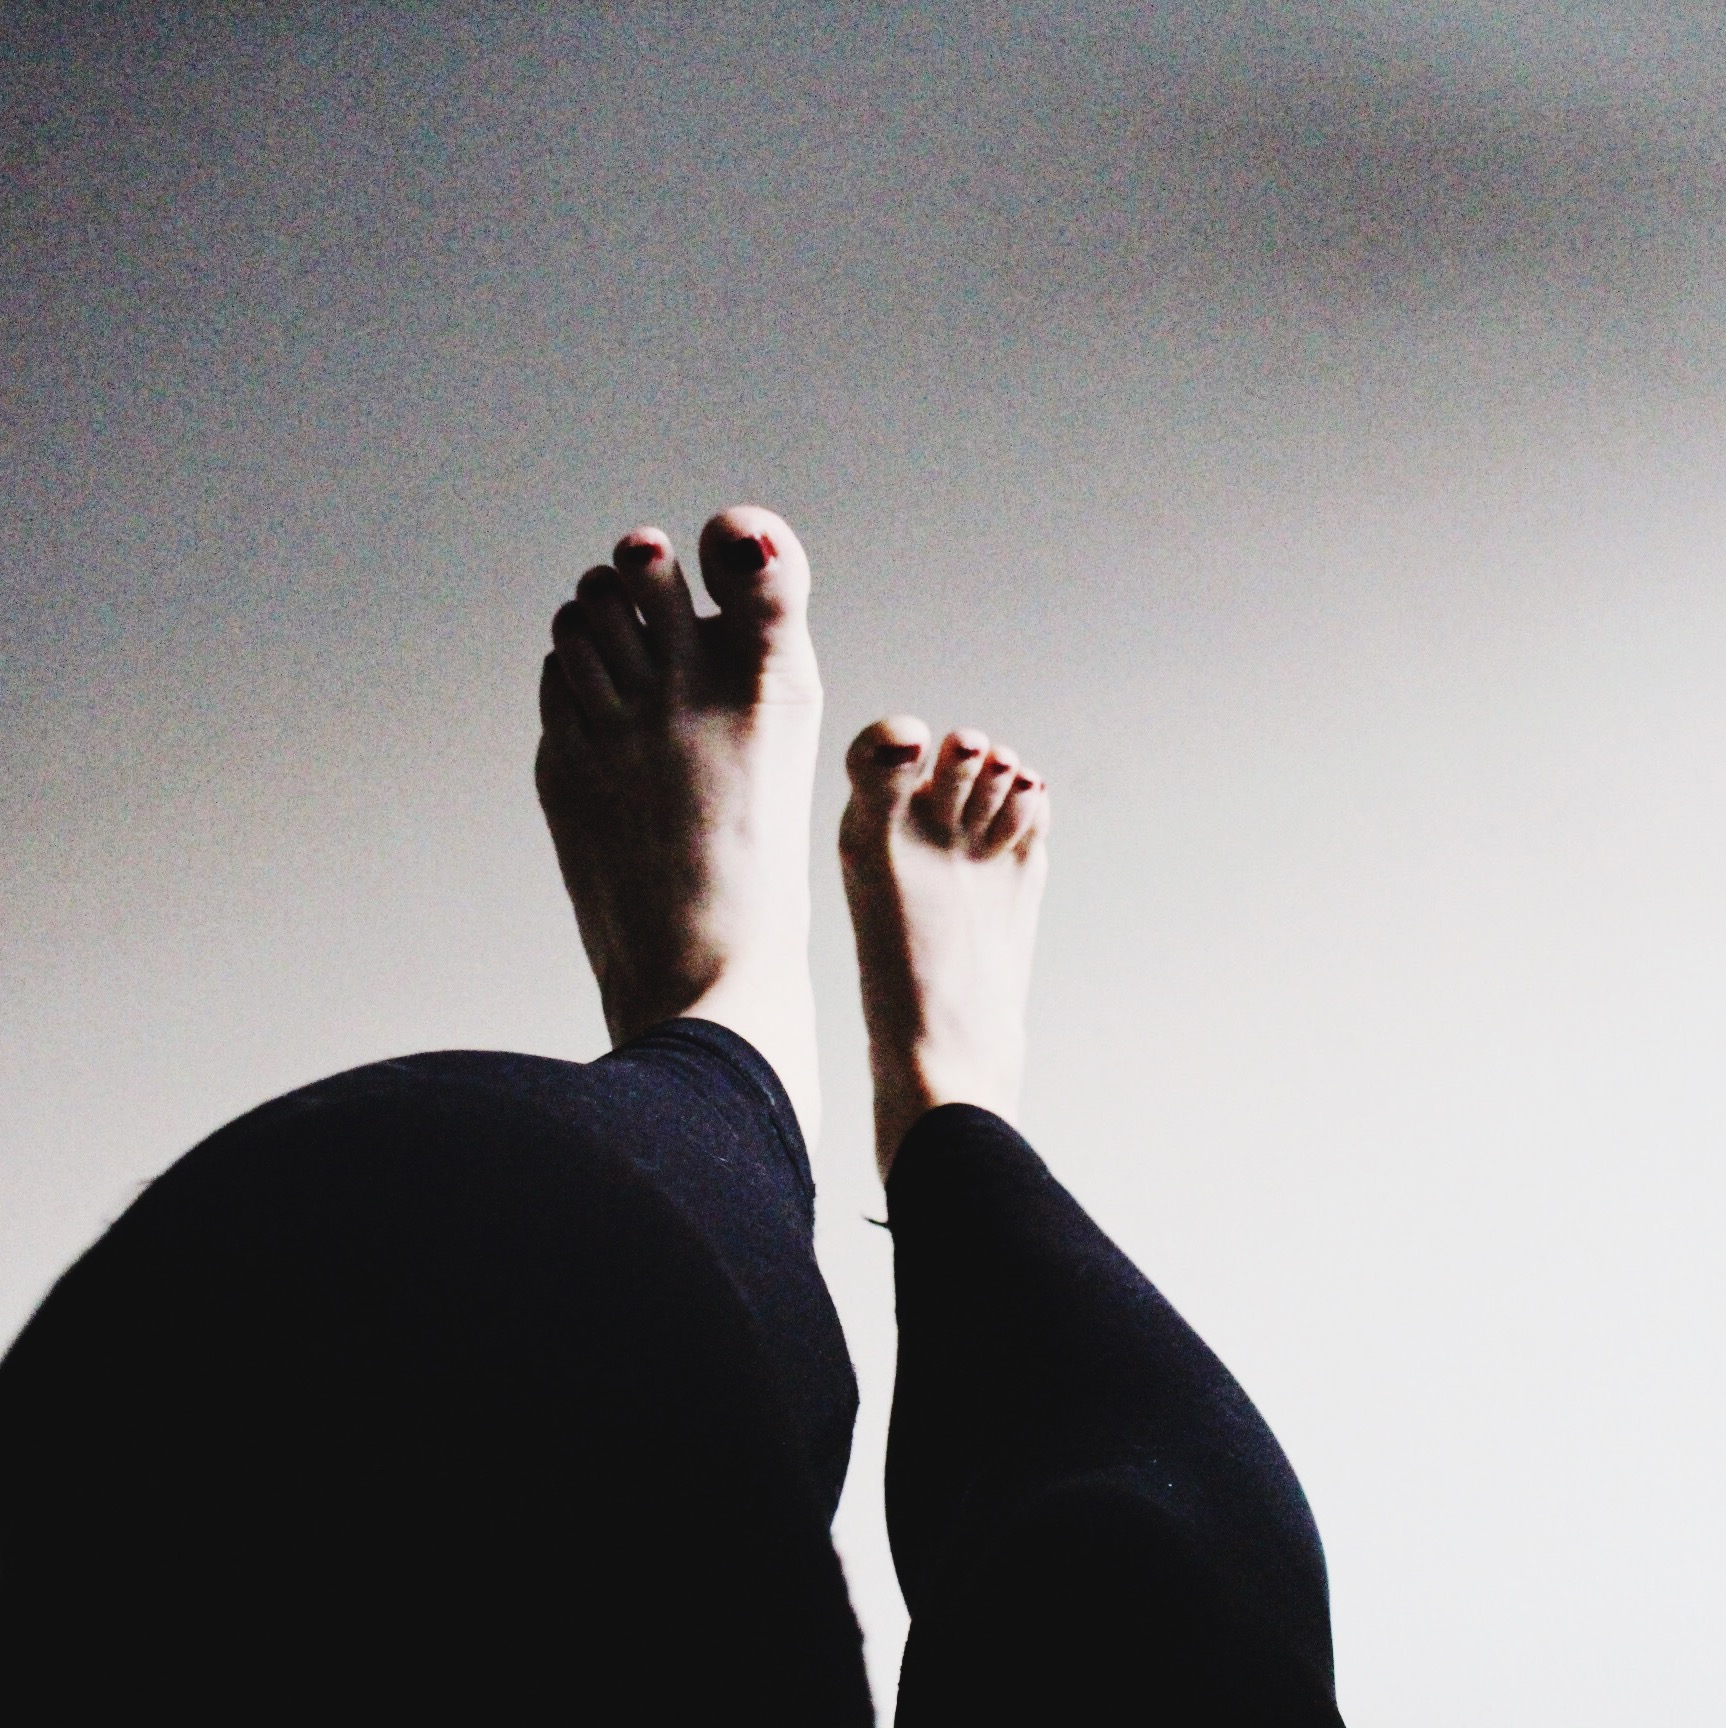 What a Poser - My Yoga Challenge - Week 3